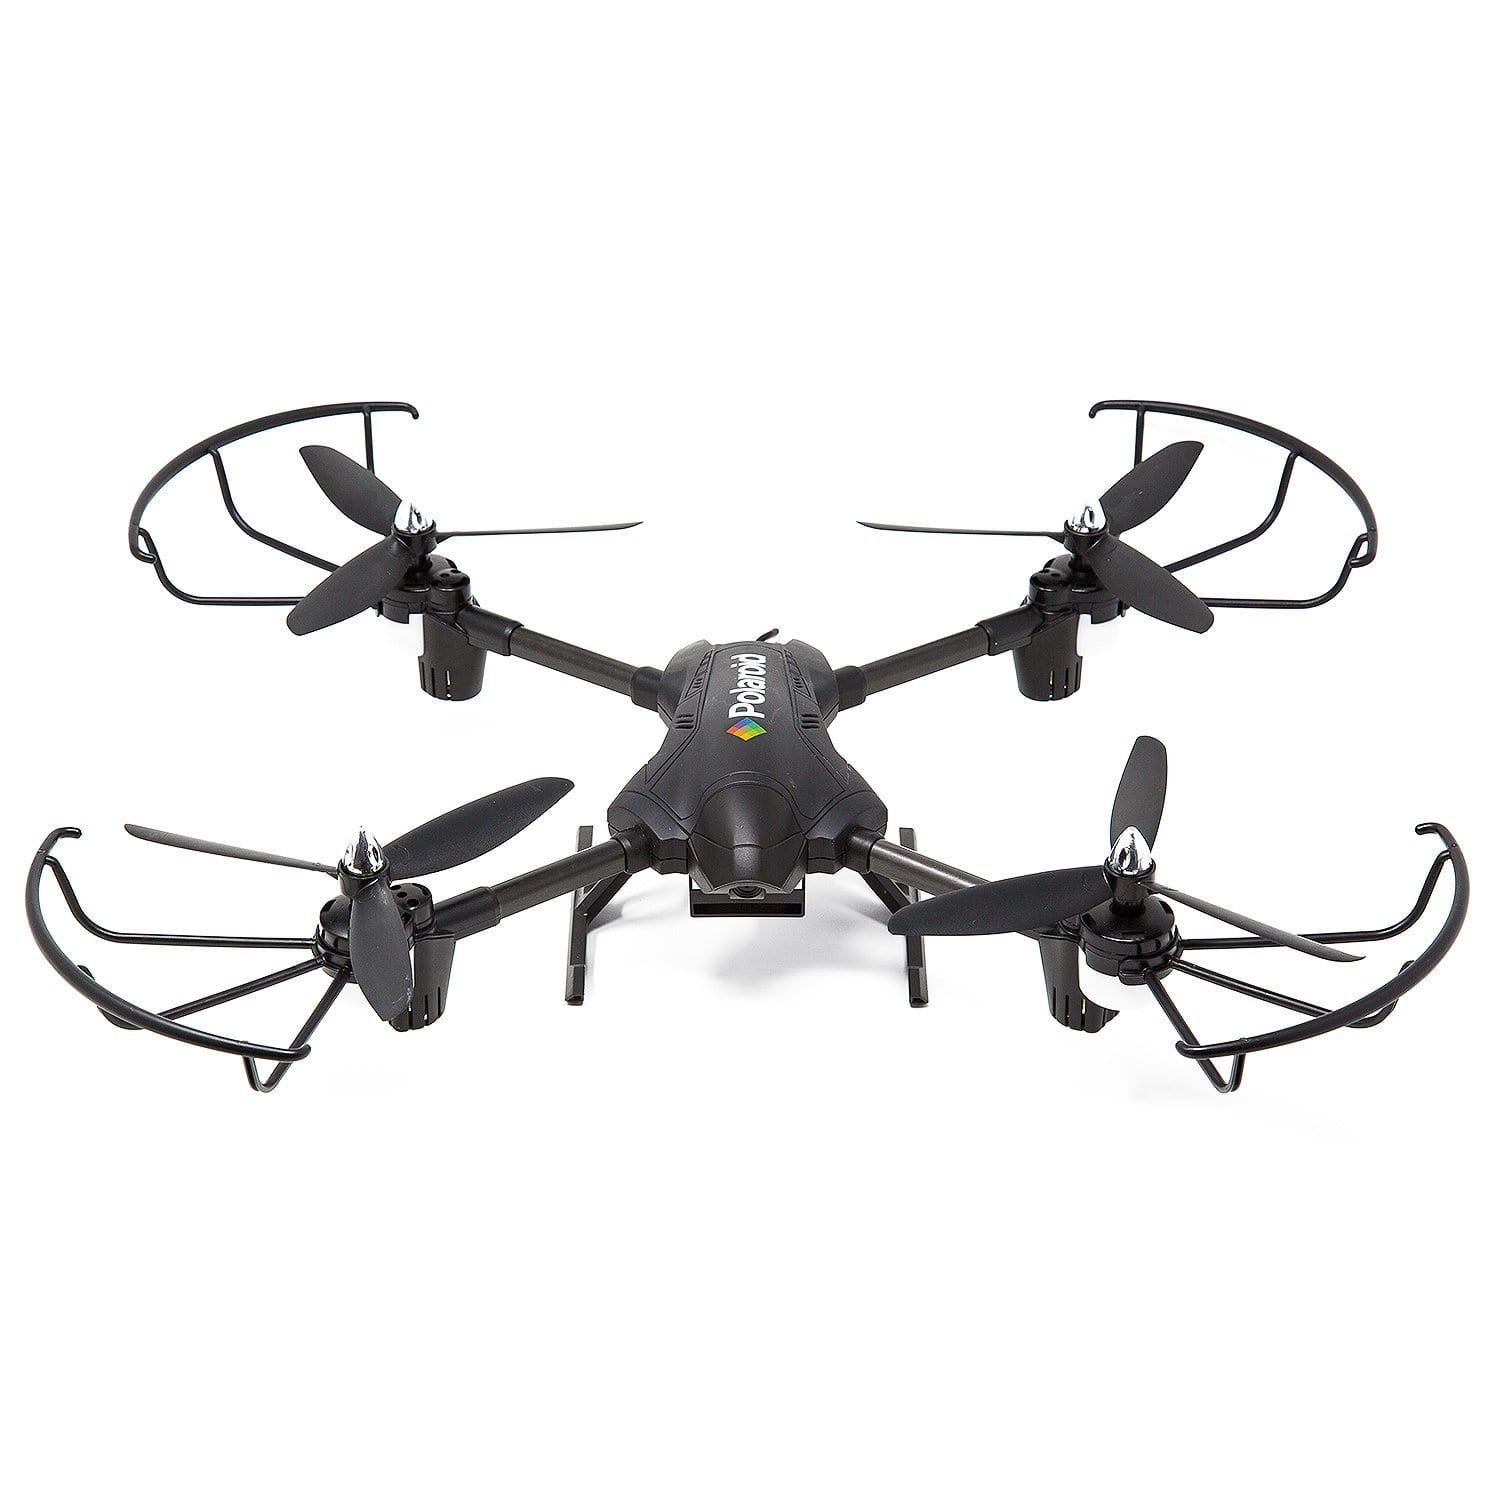 Polaroid PL2400 Quadcopter Drone With 720p HD Camera And Wi-Fi $119.99 + FREE SHIPPING